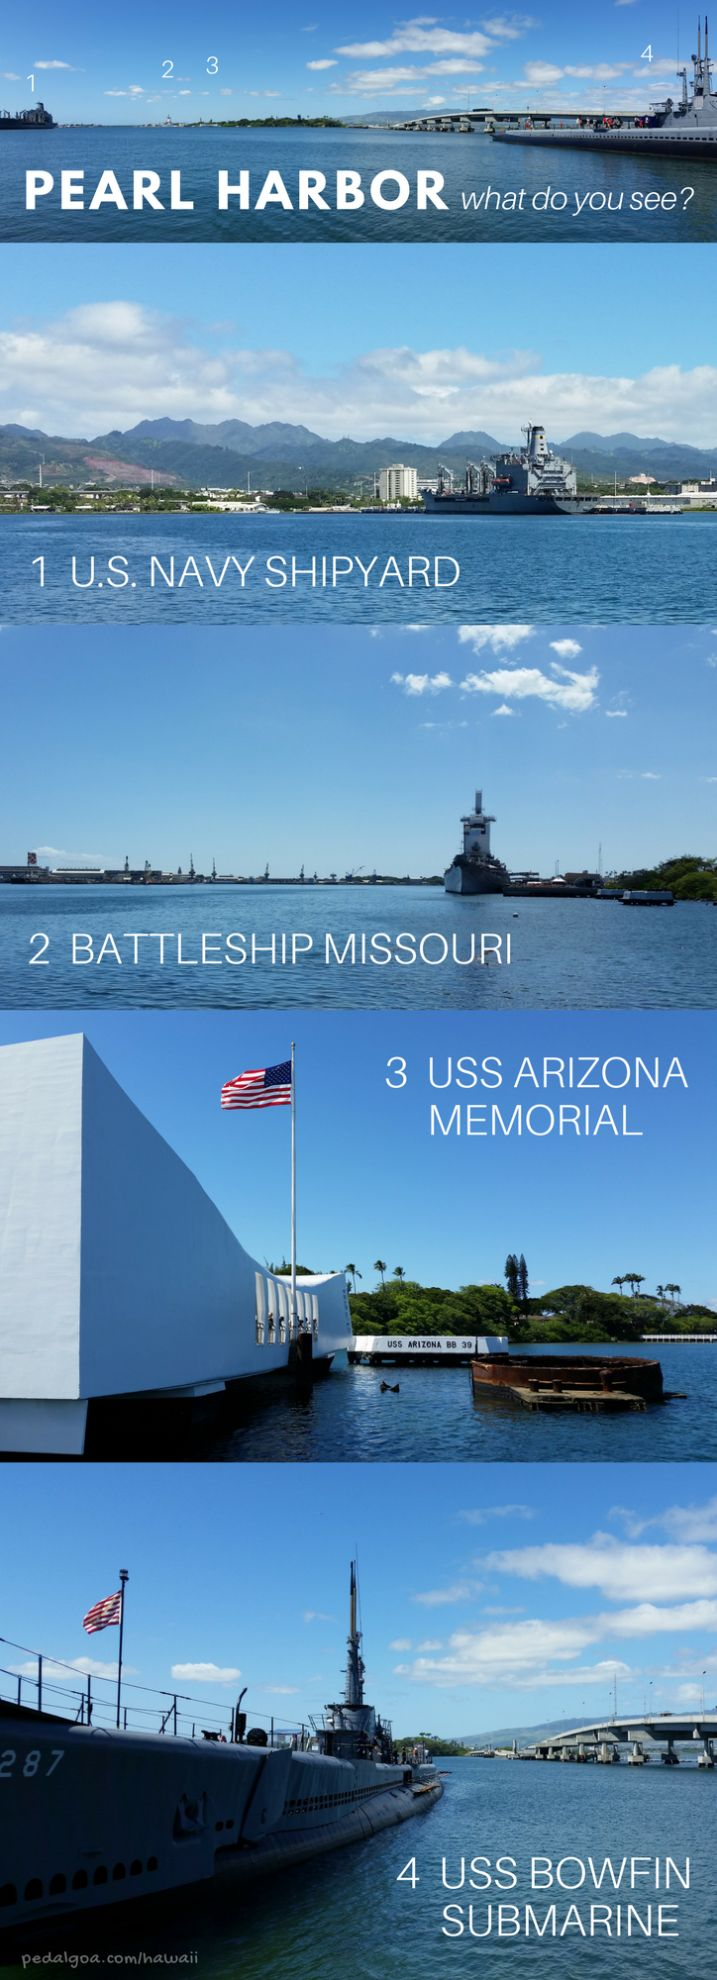 Pearl Harbor, USS Arizona memorial, Battleship Missouri, USS Bowfin Submarine, museum. Hawaii top travel bucket list of cheap things to do on Oahu, near Waikiki, Honolulu, on days you don't go hiking, snorkeling, or to beaches. As a national monument, it's a sort of national park in Hawaii! For culture and history activities, make a remembrance of the Pearl Harbor attack at this beautiful outdoor museum a part of your Hawaii vacation on a budget. Free admissions. #hawaii #oahu